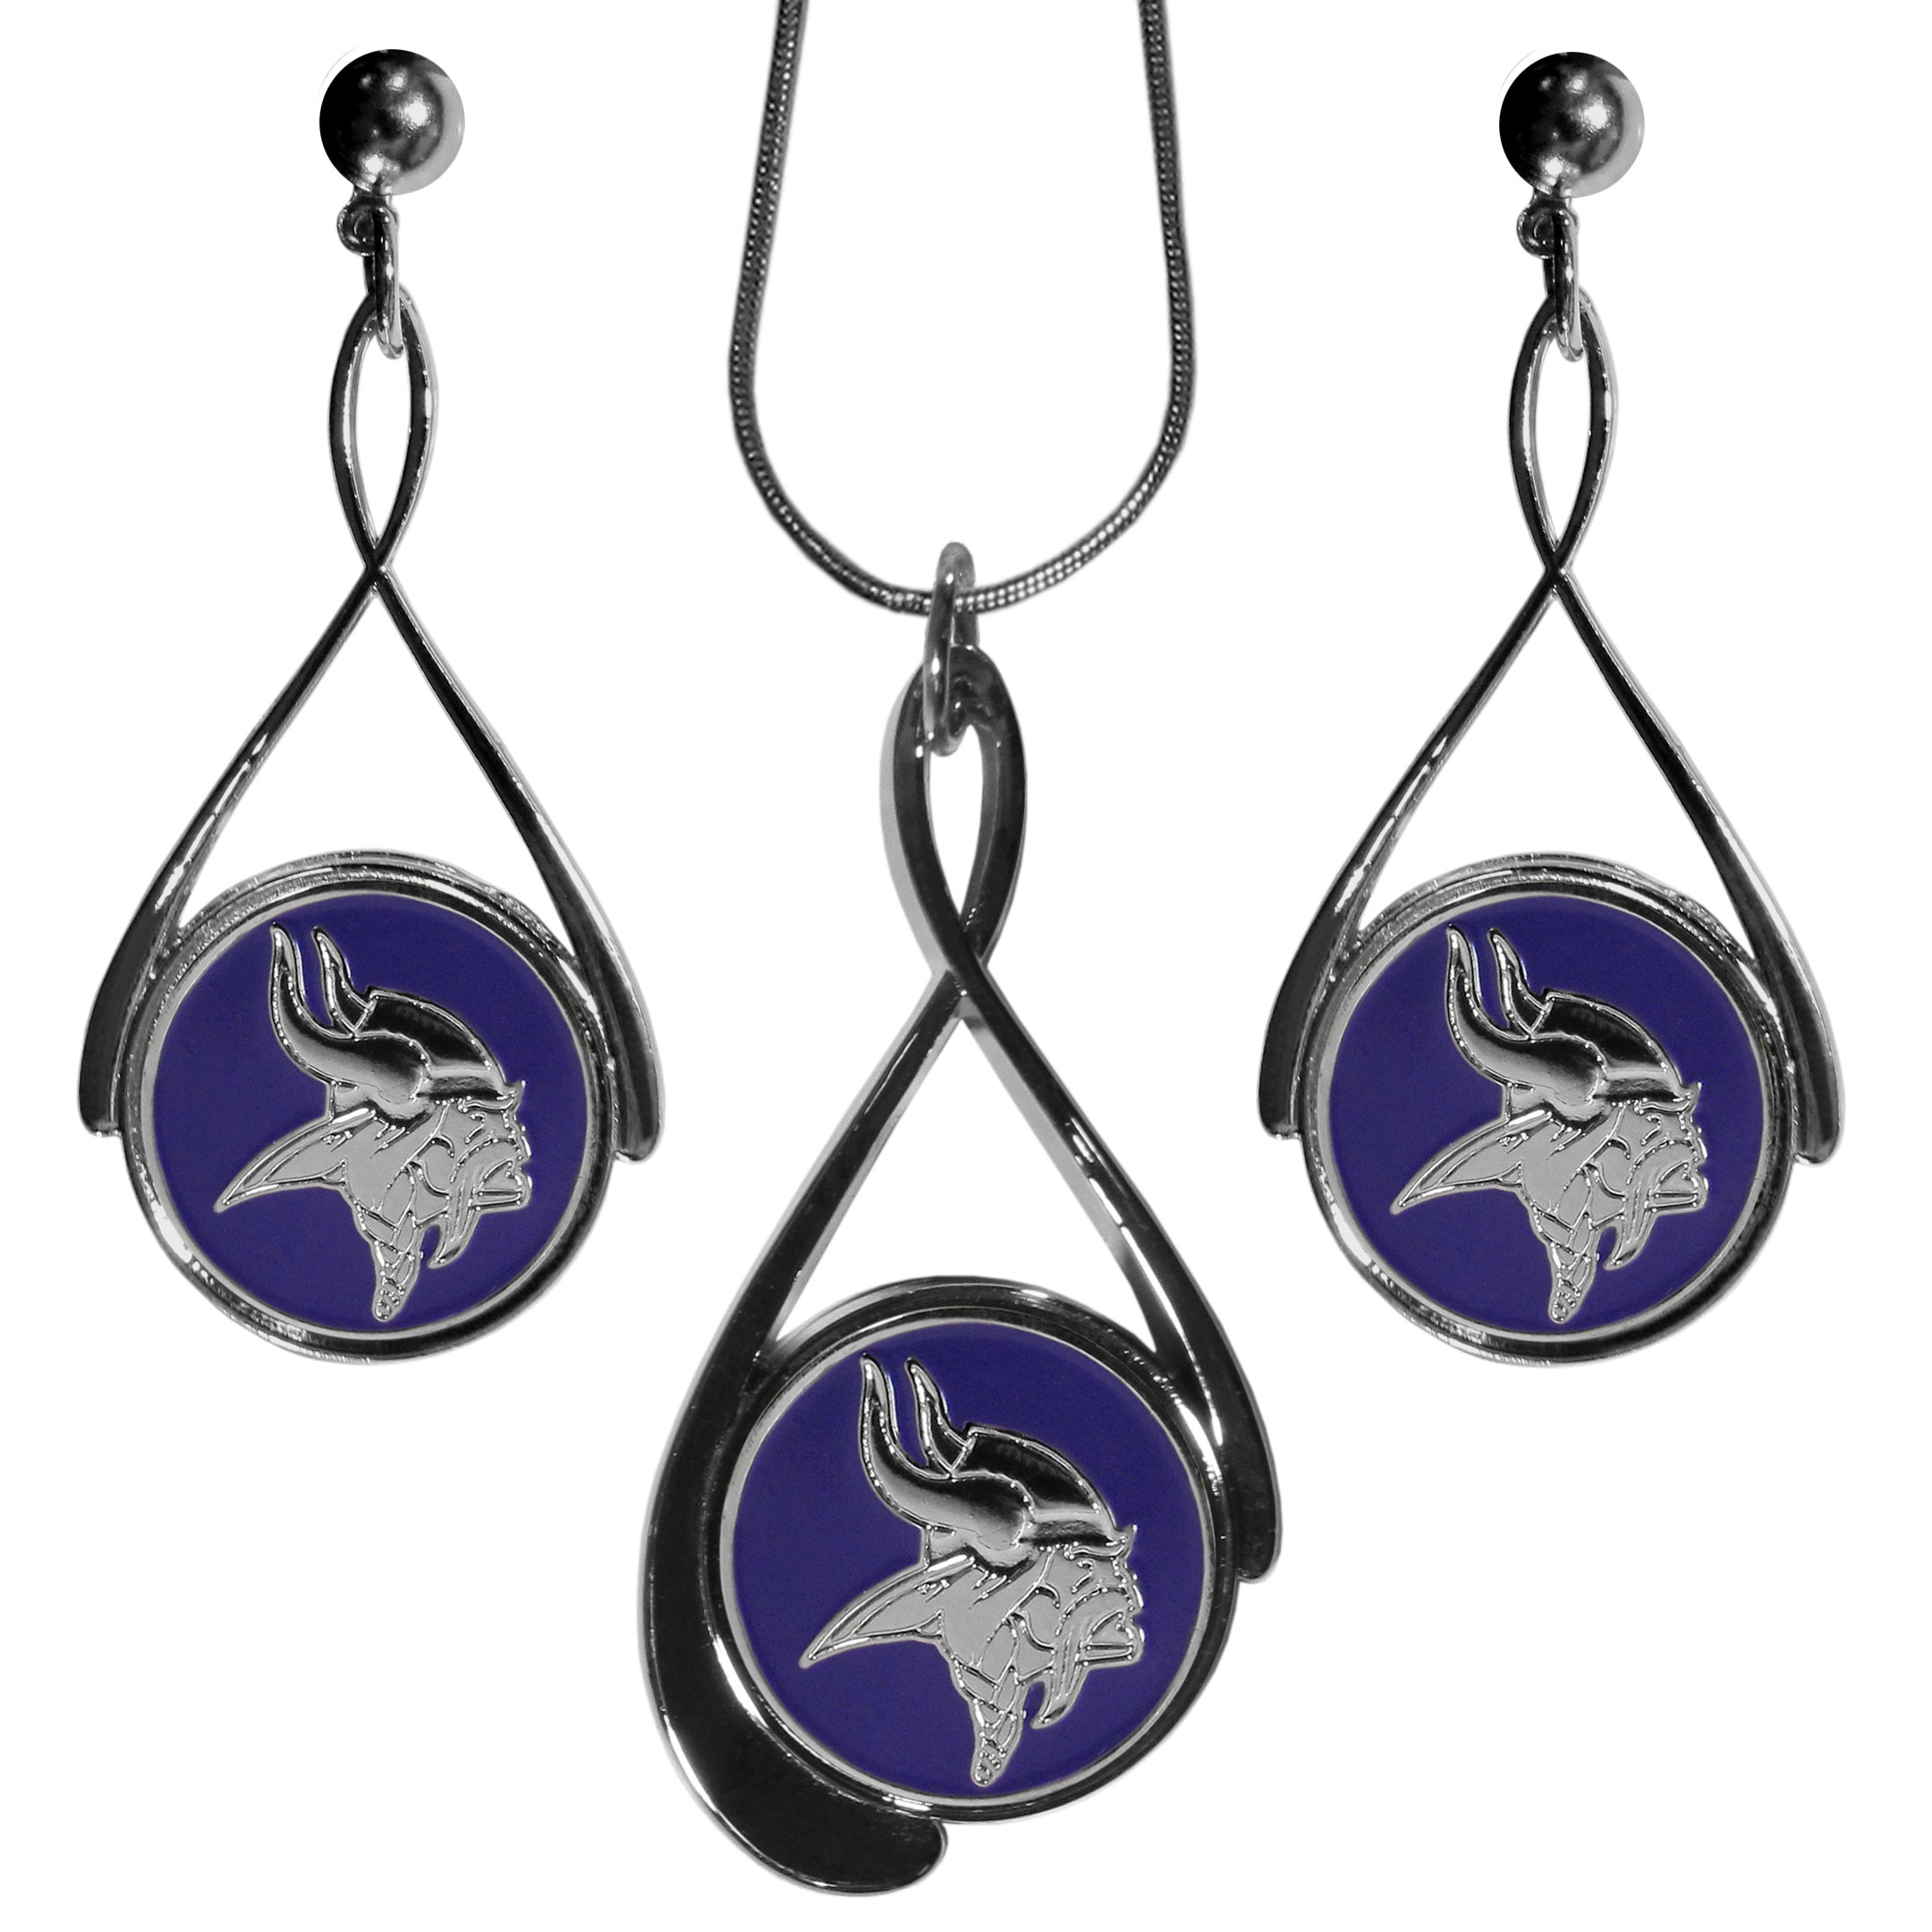 Minnesota Vikings Tear Drop Jewelry Set - Our Minnesota Vikings tear drop earrings and necklace set is a sporty twist on the classic tear drop style. The high polish dangle earrings feature the team logo in raised metal against the primary team color inset into the 2 inch tear drop setting paired with a beautiful matching necklace with a 18 inch snake chain with 2 inch extendor. The earrings have hypoallergenic stud posts.